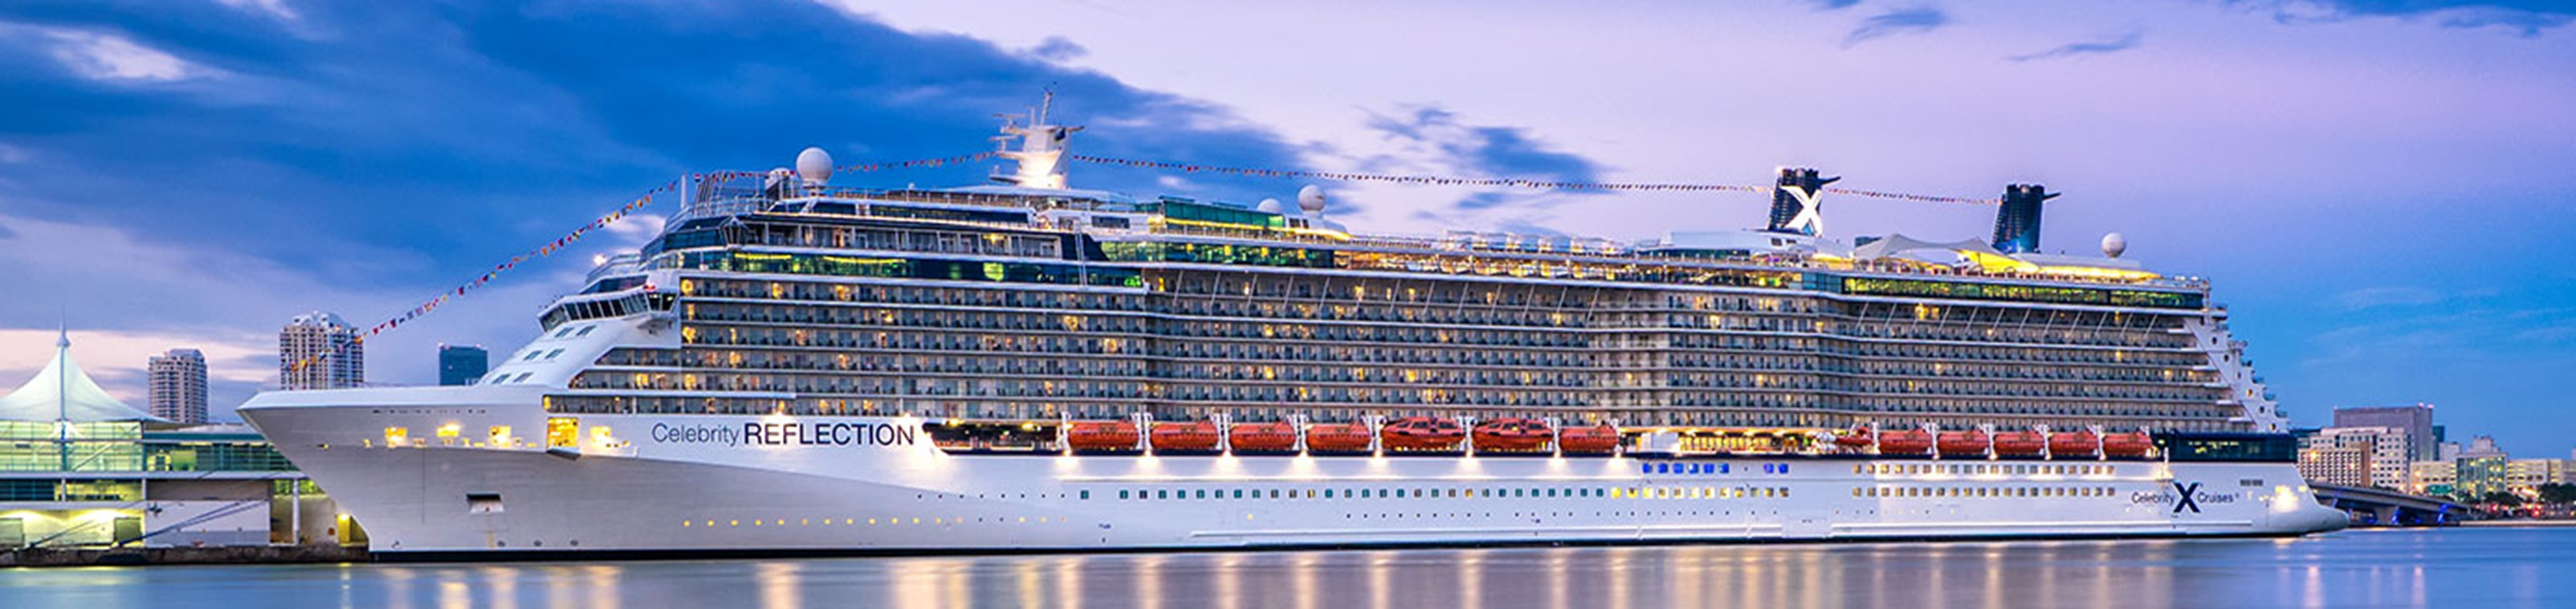 - Check In & cruises